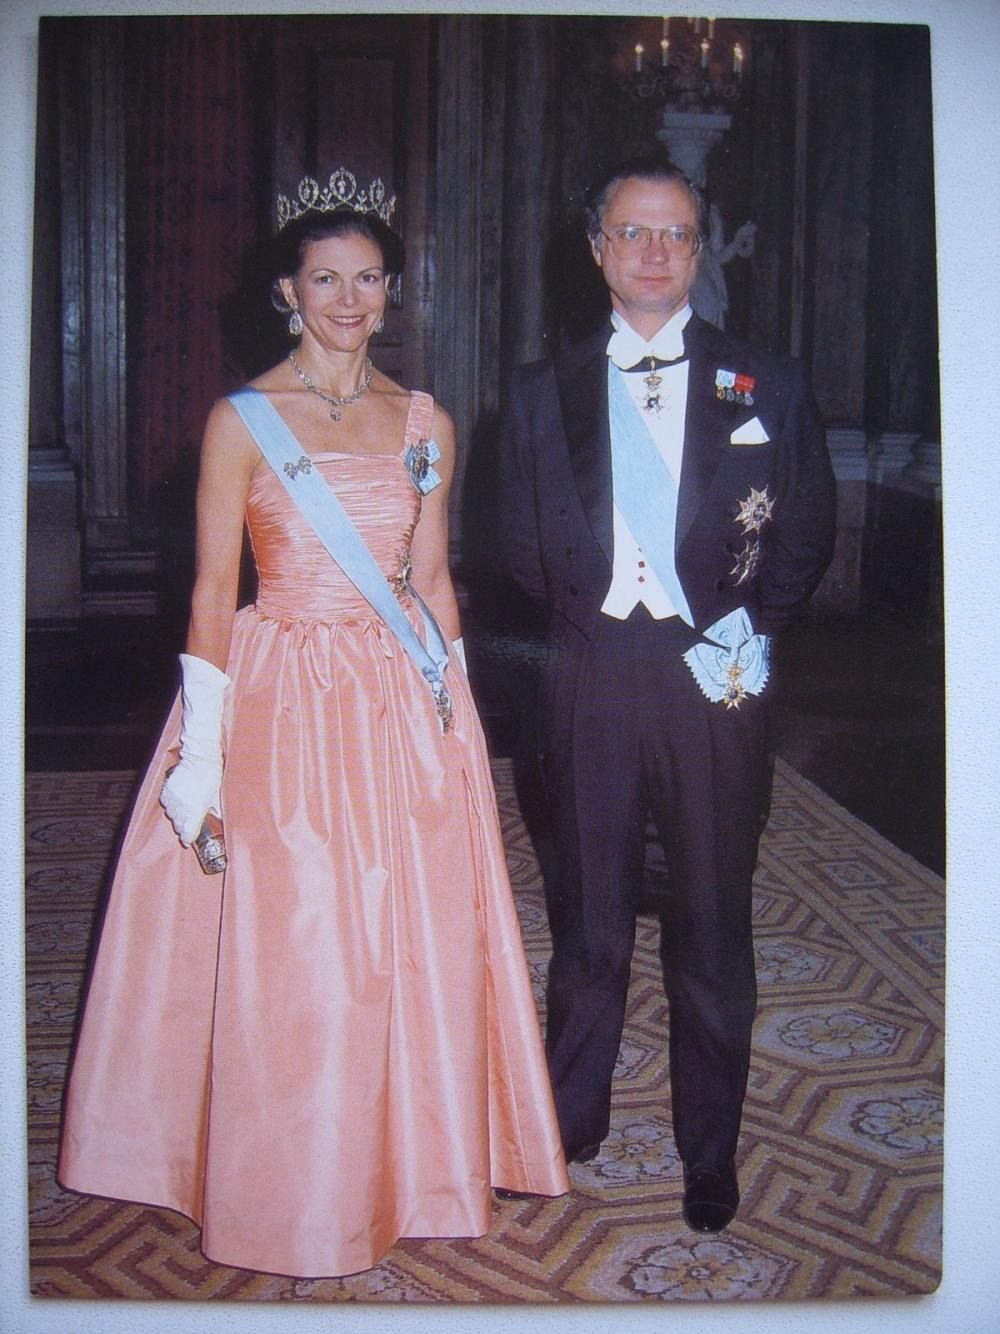 Never seen this photo or dress of Queen Silvia!